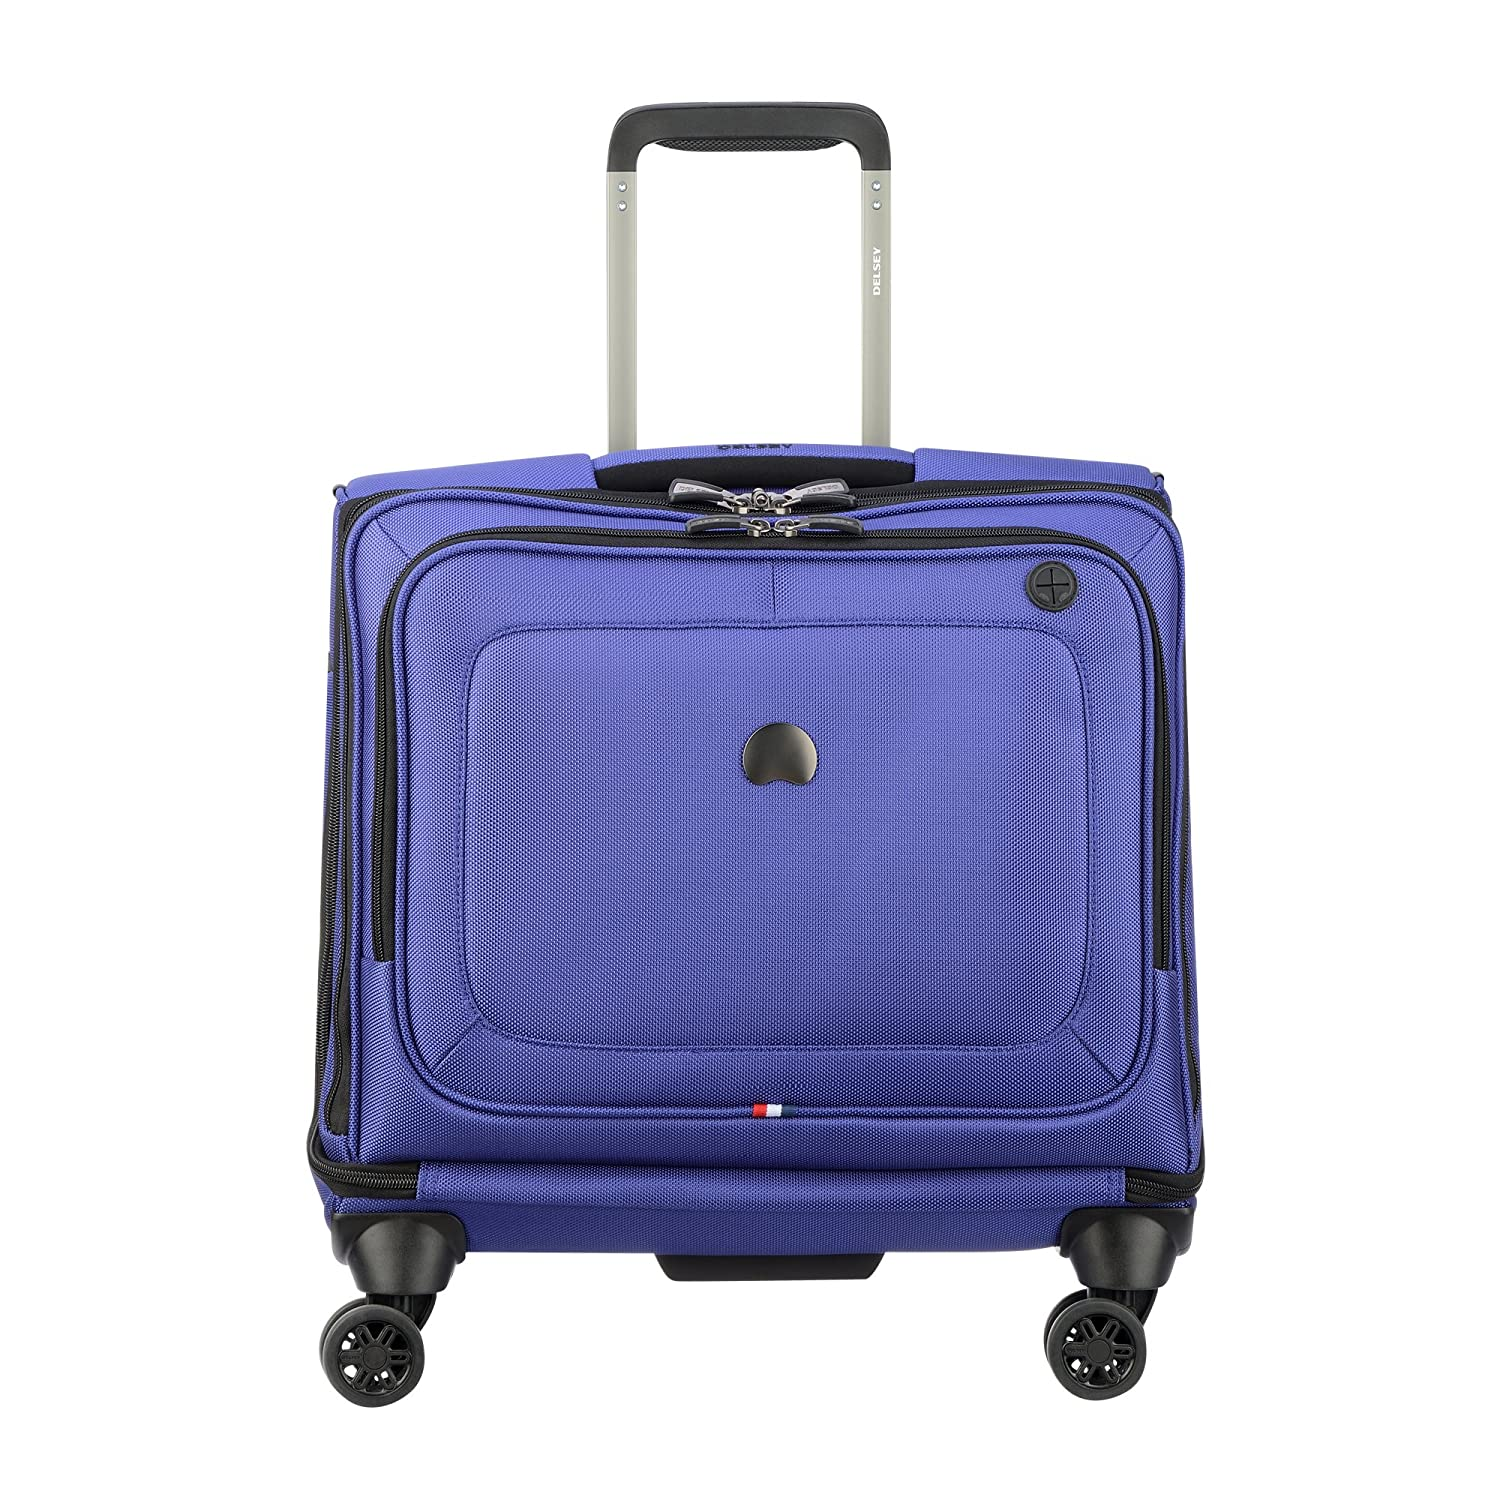 0f098cee0d19 DELSEY Paris Cruise Lite Softside Spinner Trolley Tote, BLUE